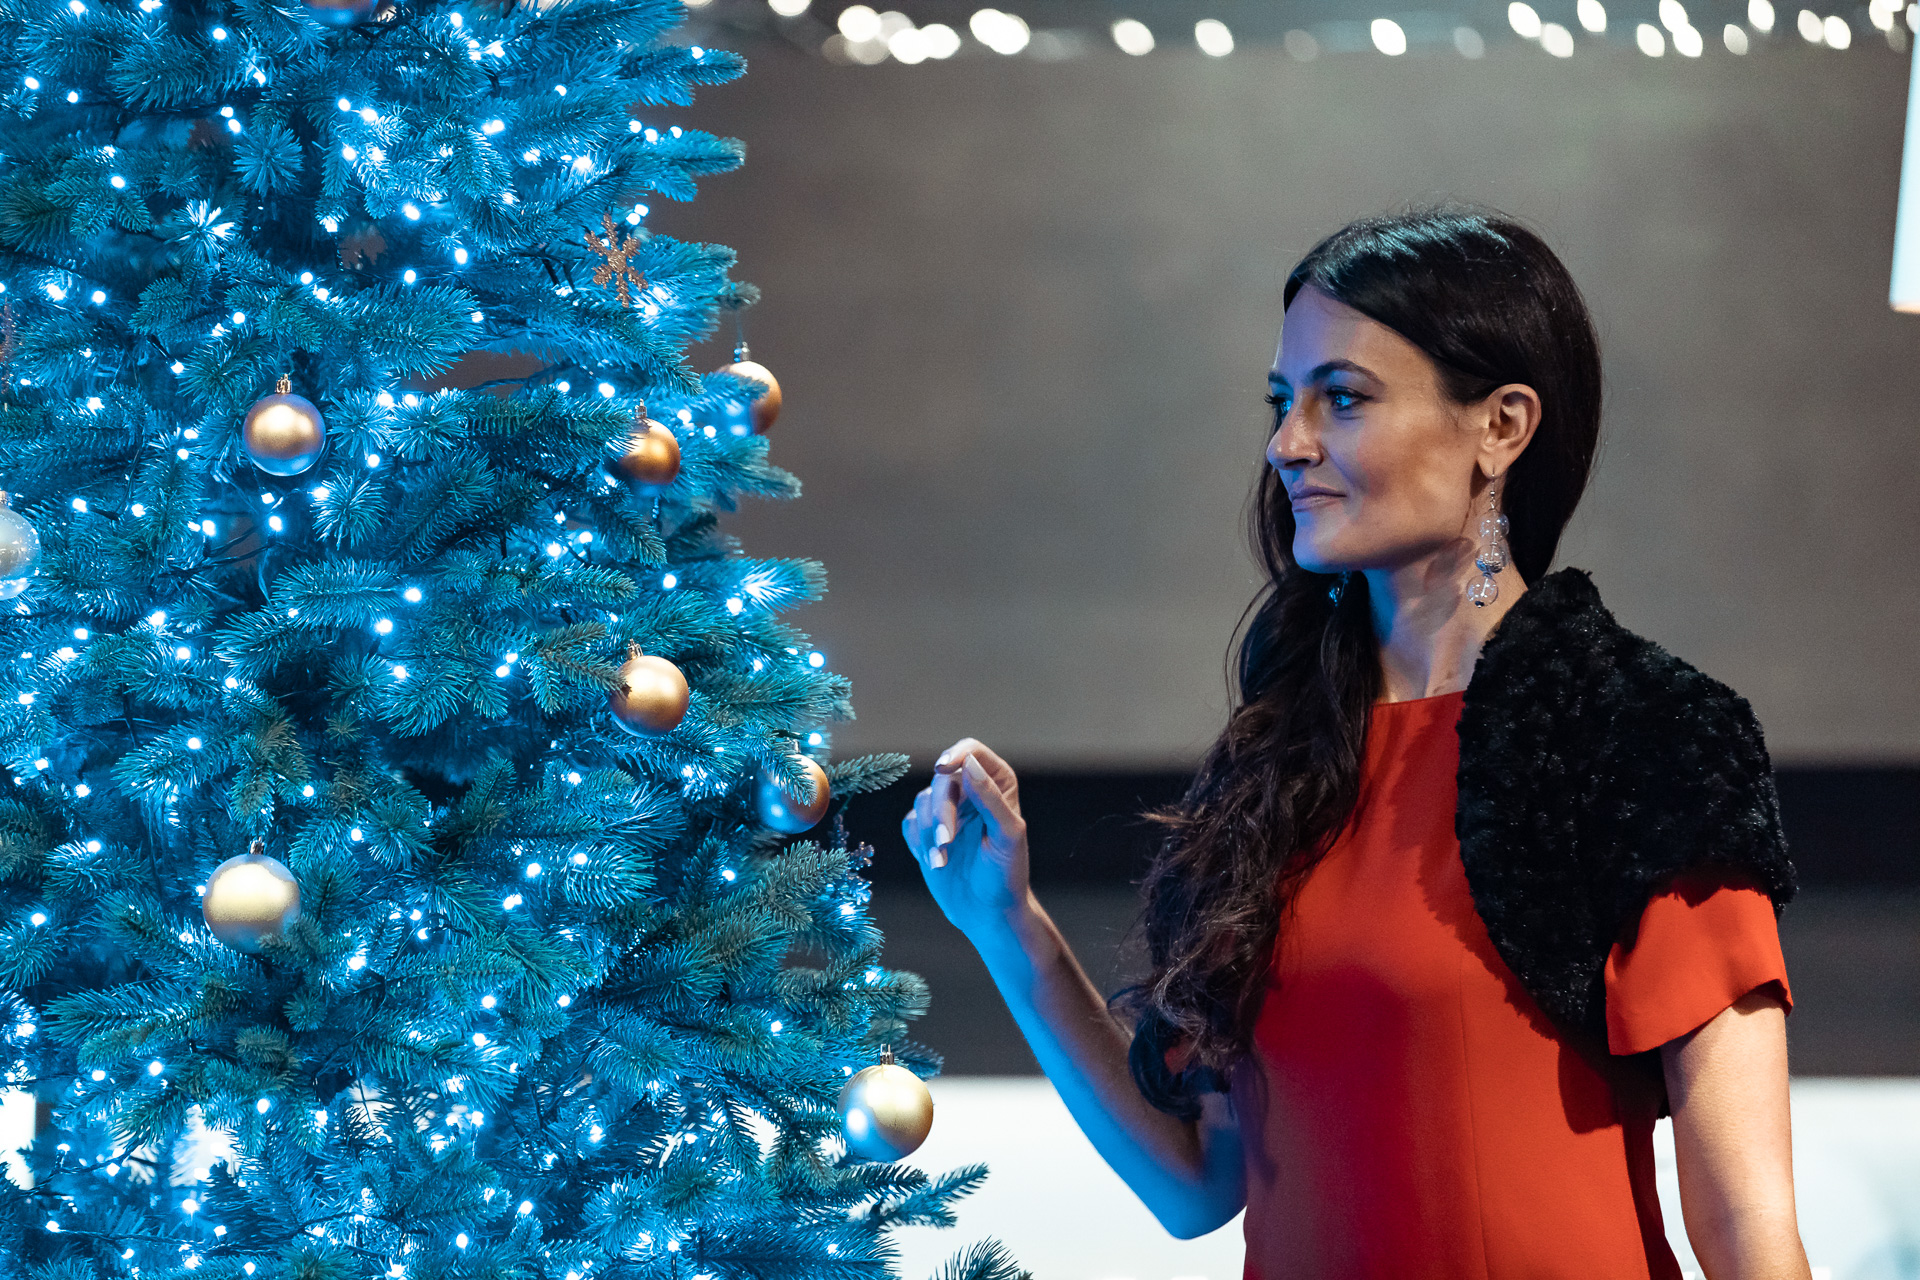 Attrice vicino all'albero decorato con luci azzurre durante le riprese del video commercial per Twinkly music